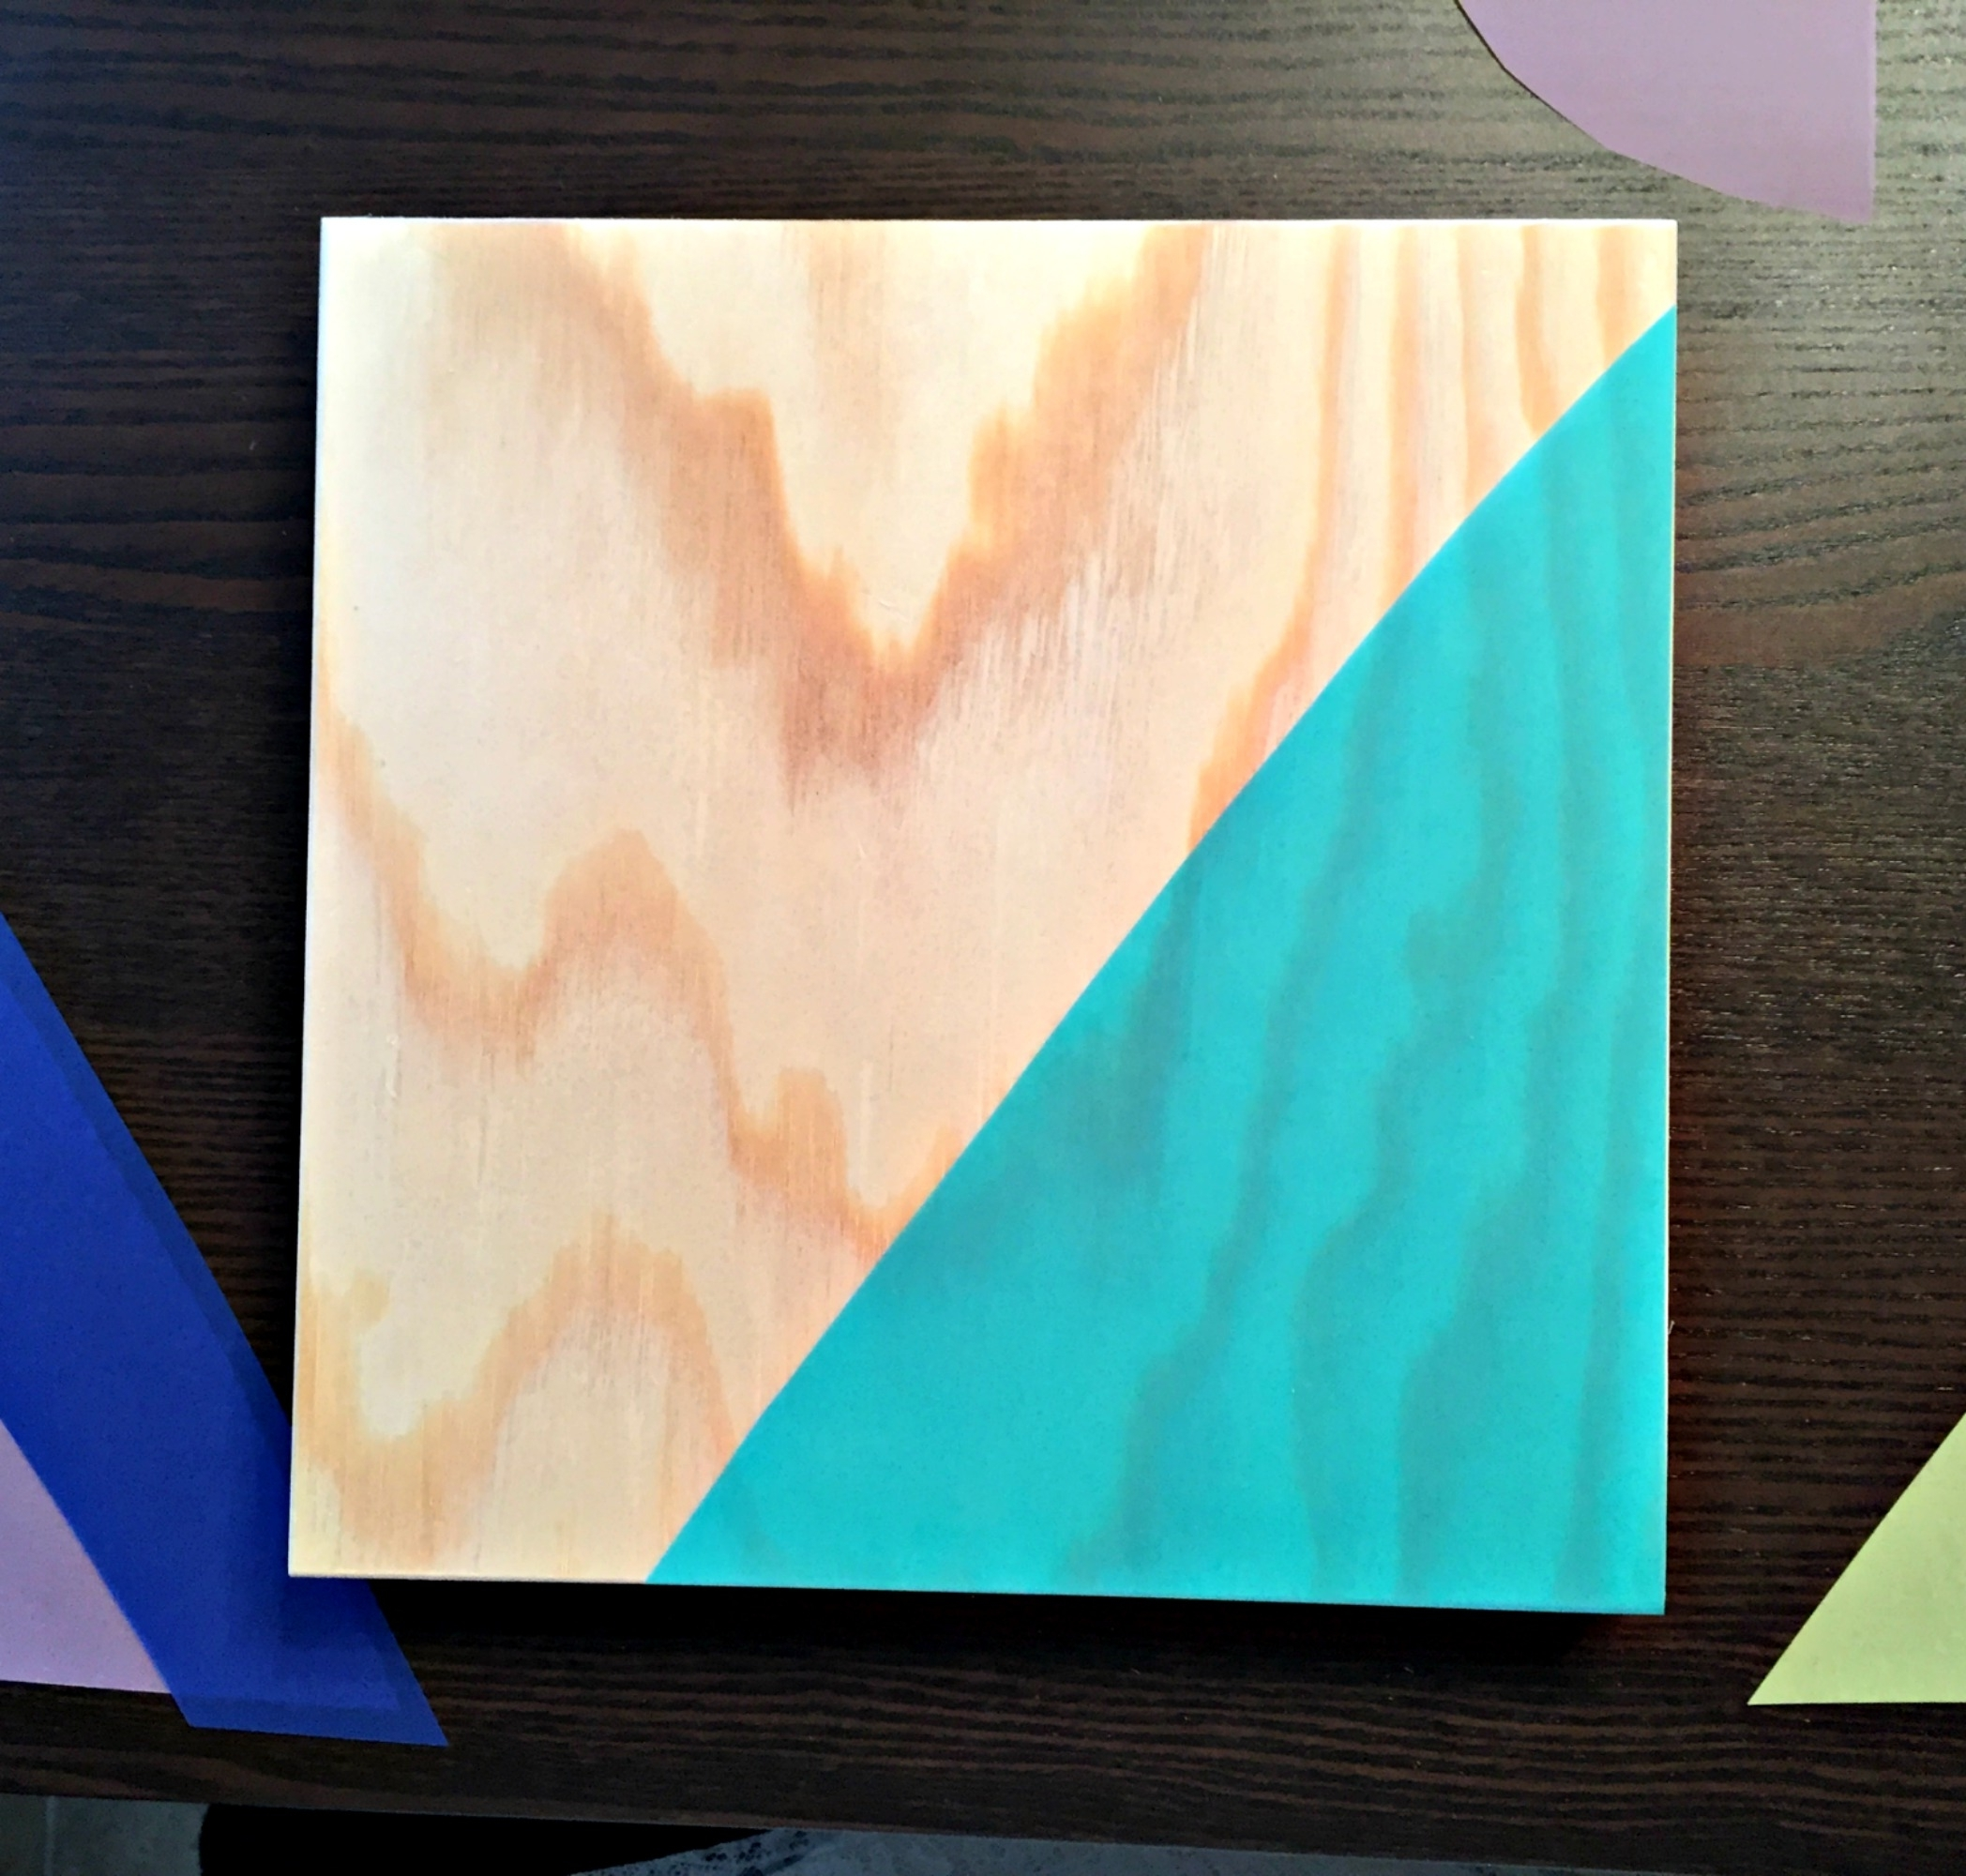 Easy Wall Art: Geometric Wooden Canvas Project – Darice With Regard To Most Up To Date Teal And Green Wall Art (View 4 of 15)